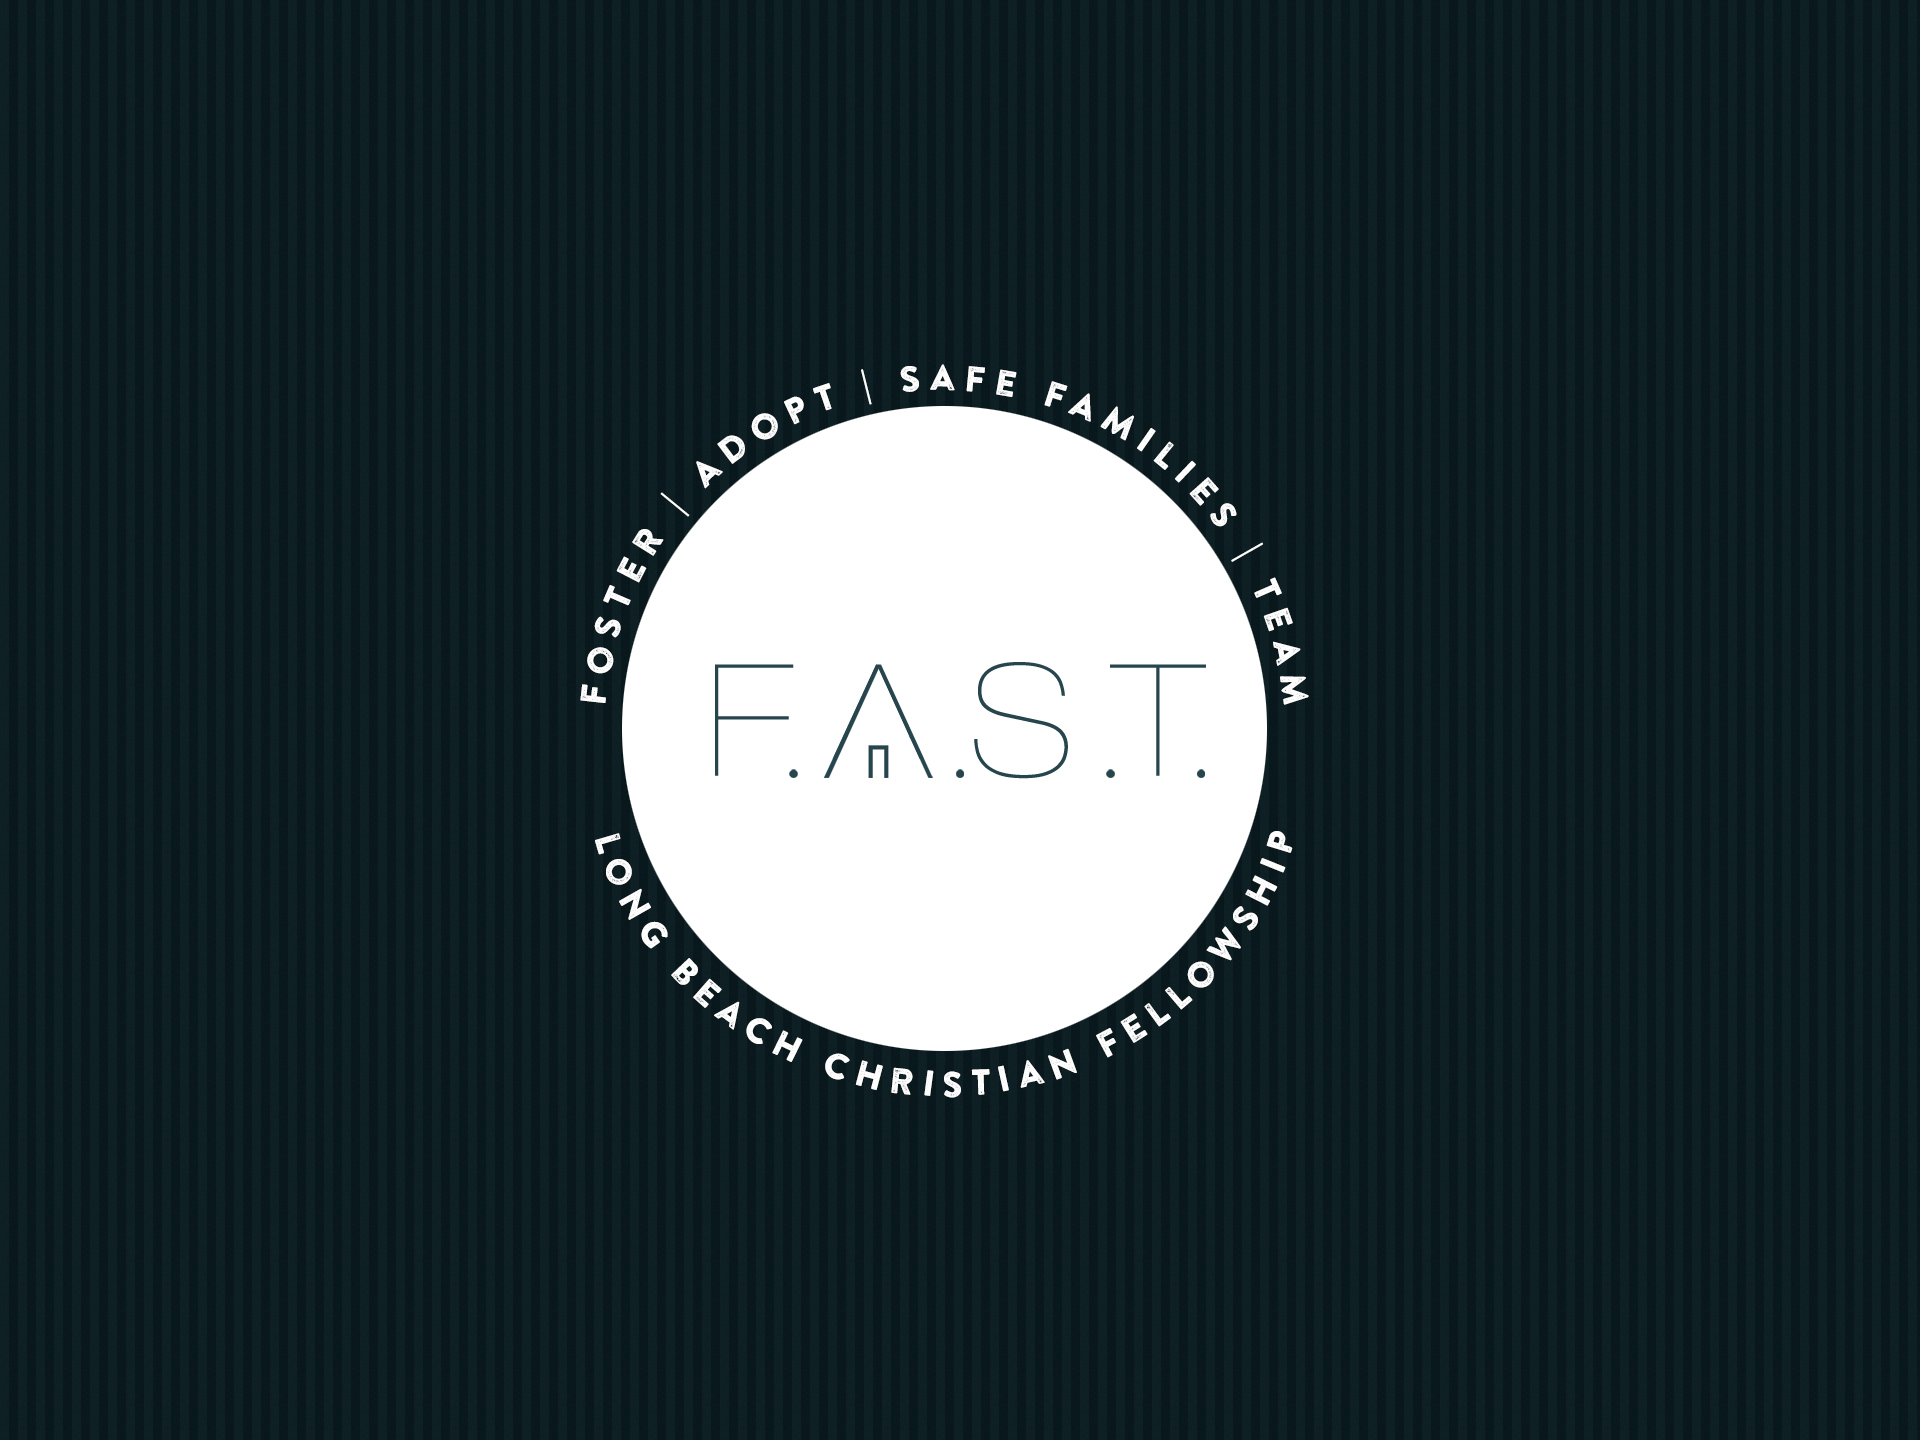 If you're on the journey of Foster Care, Adoption, Safe Families, or are interested in entering in, join us on the last Wednesday of the month from 6p-8p. For more information please email  fast@lbcf.org